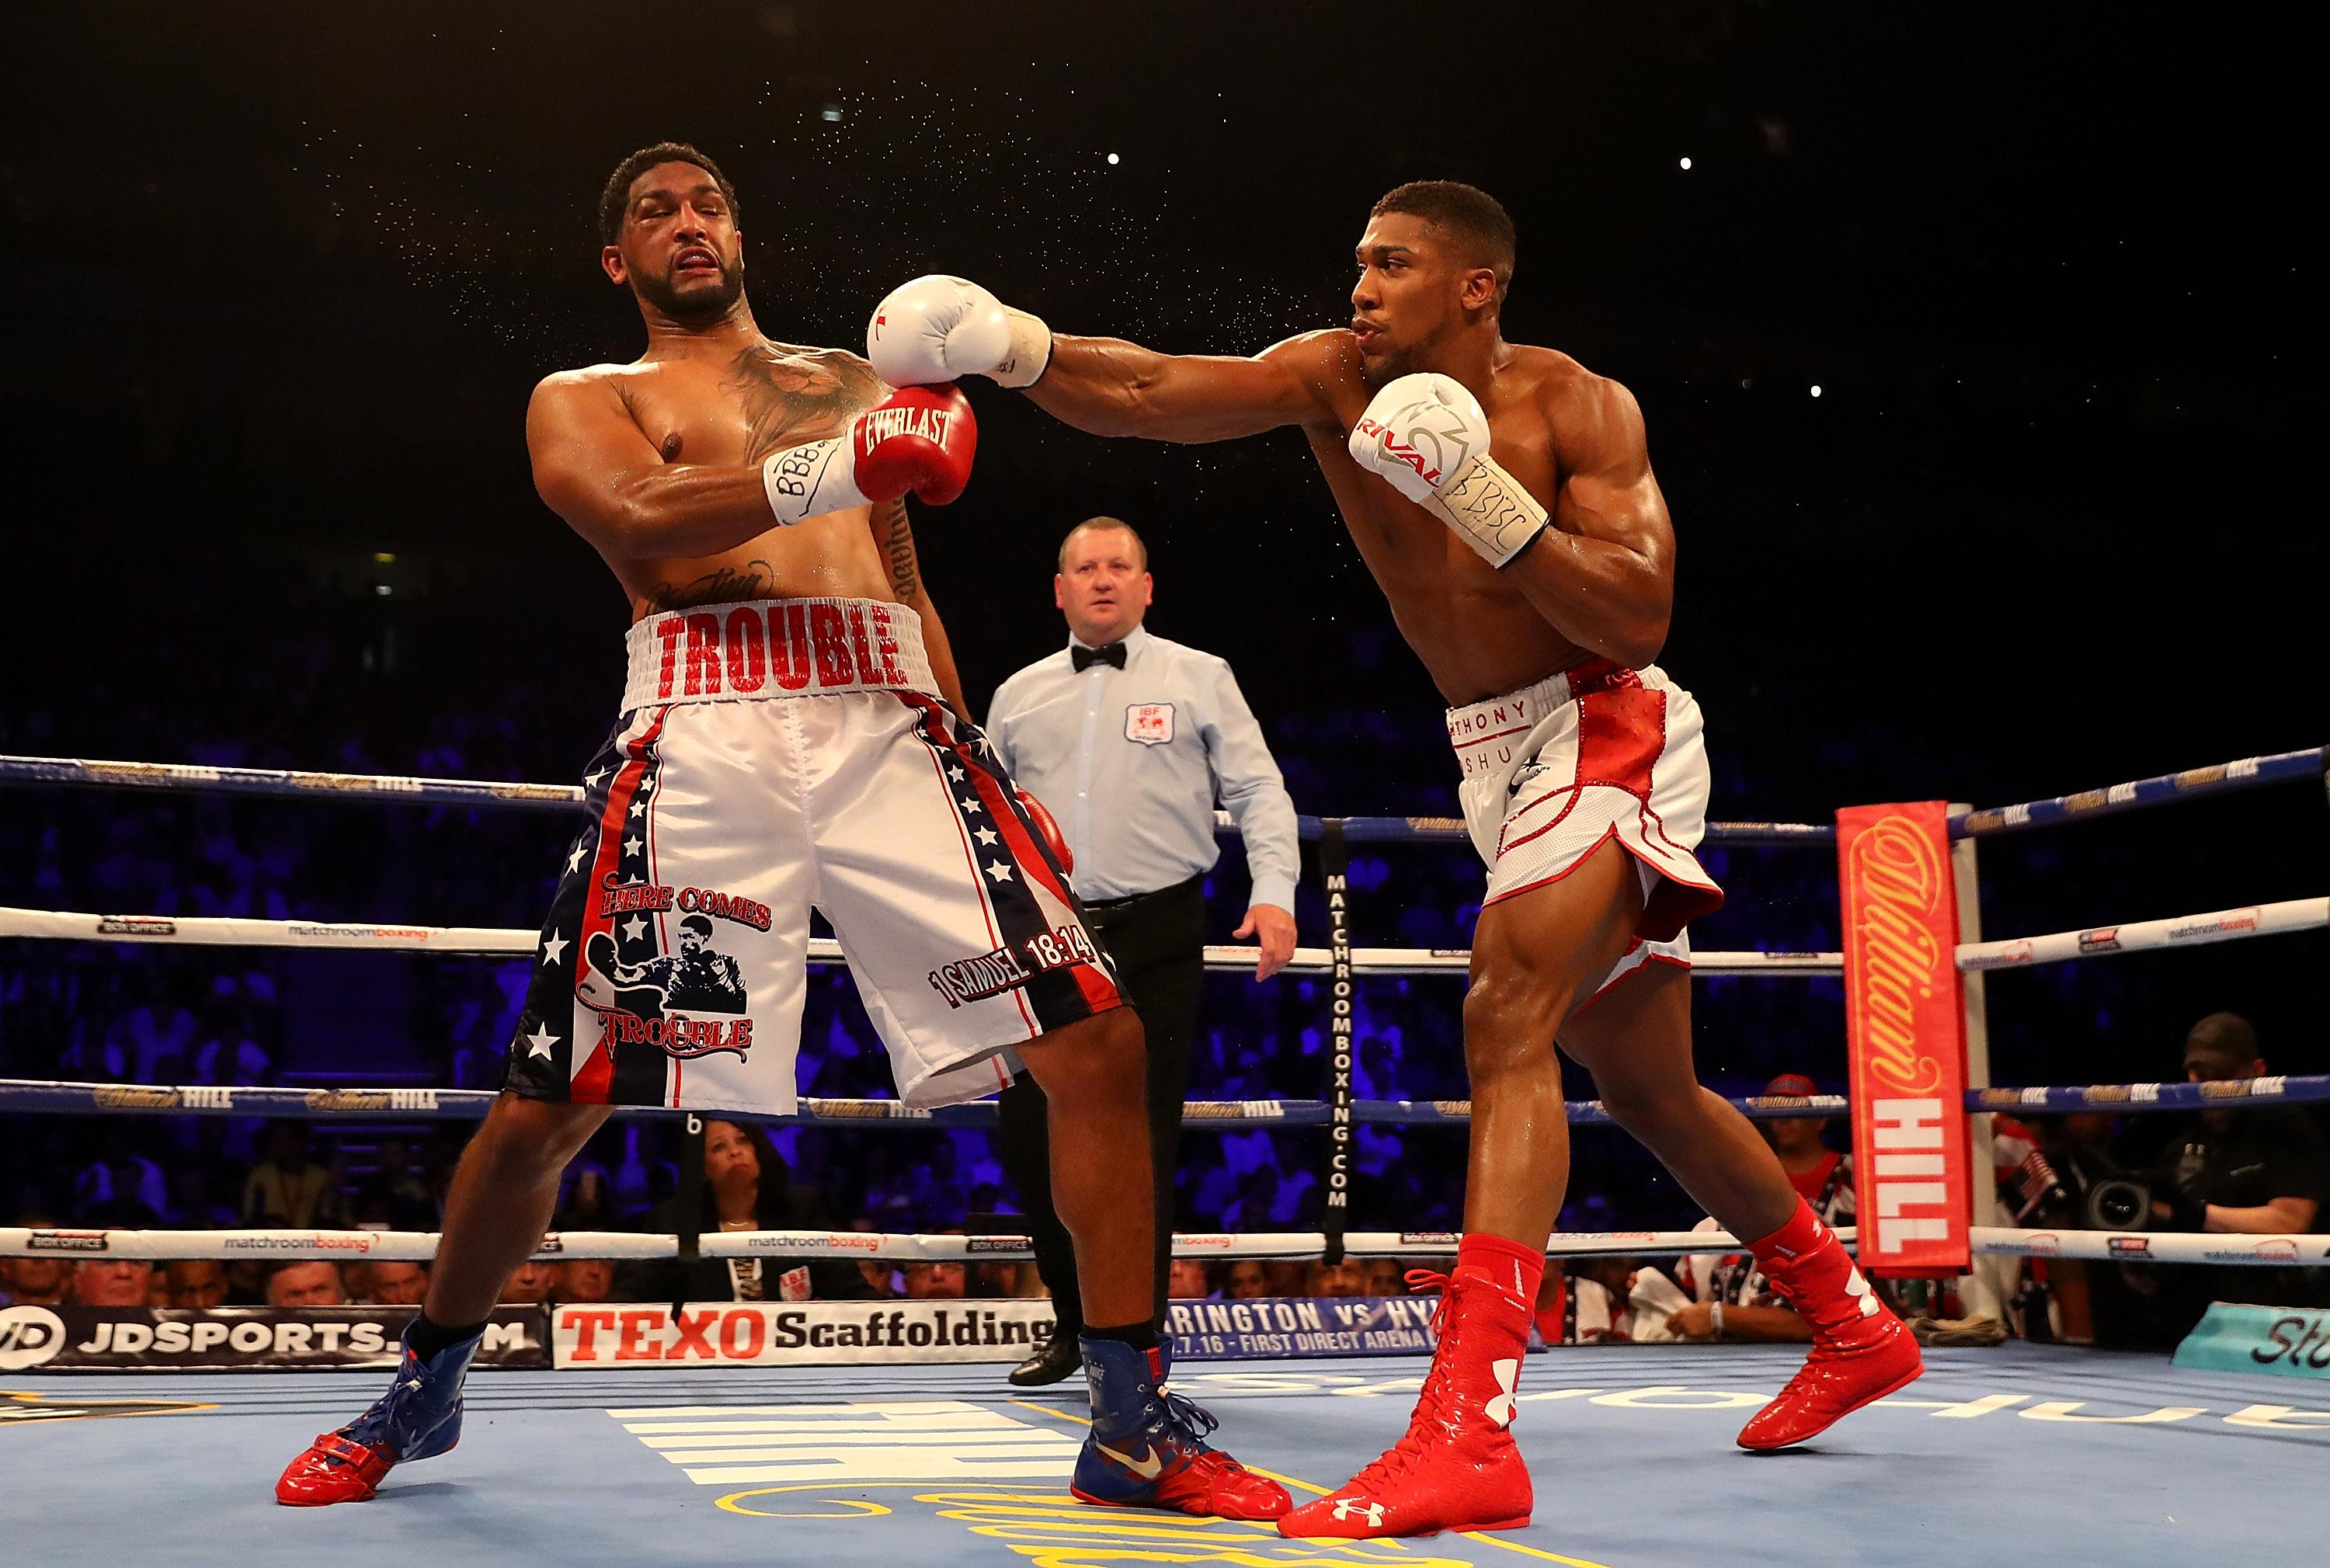 Anthony Joshua delivered a seventh-round KO of Dominic Breazeale, and it's the latter who could fight Deontay Wilder next